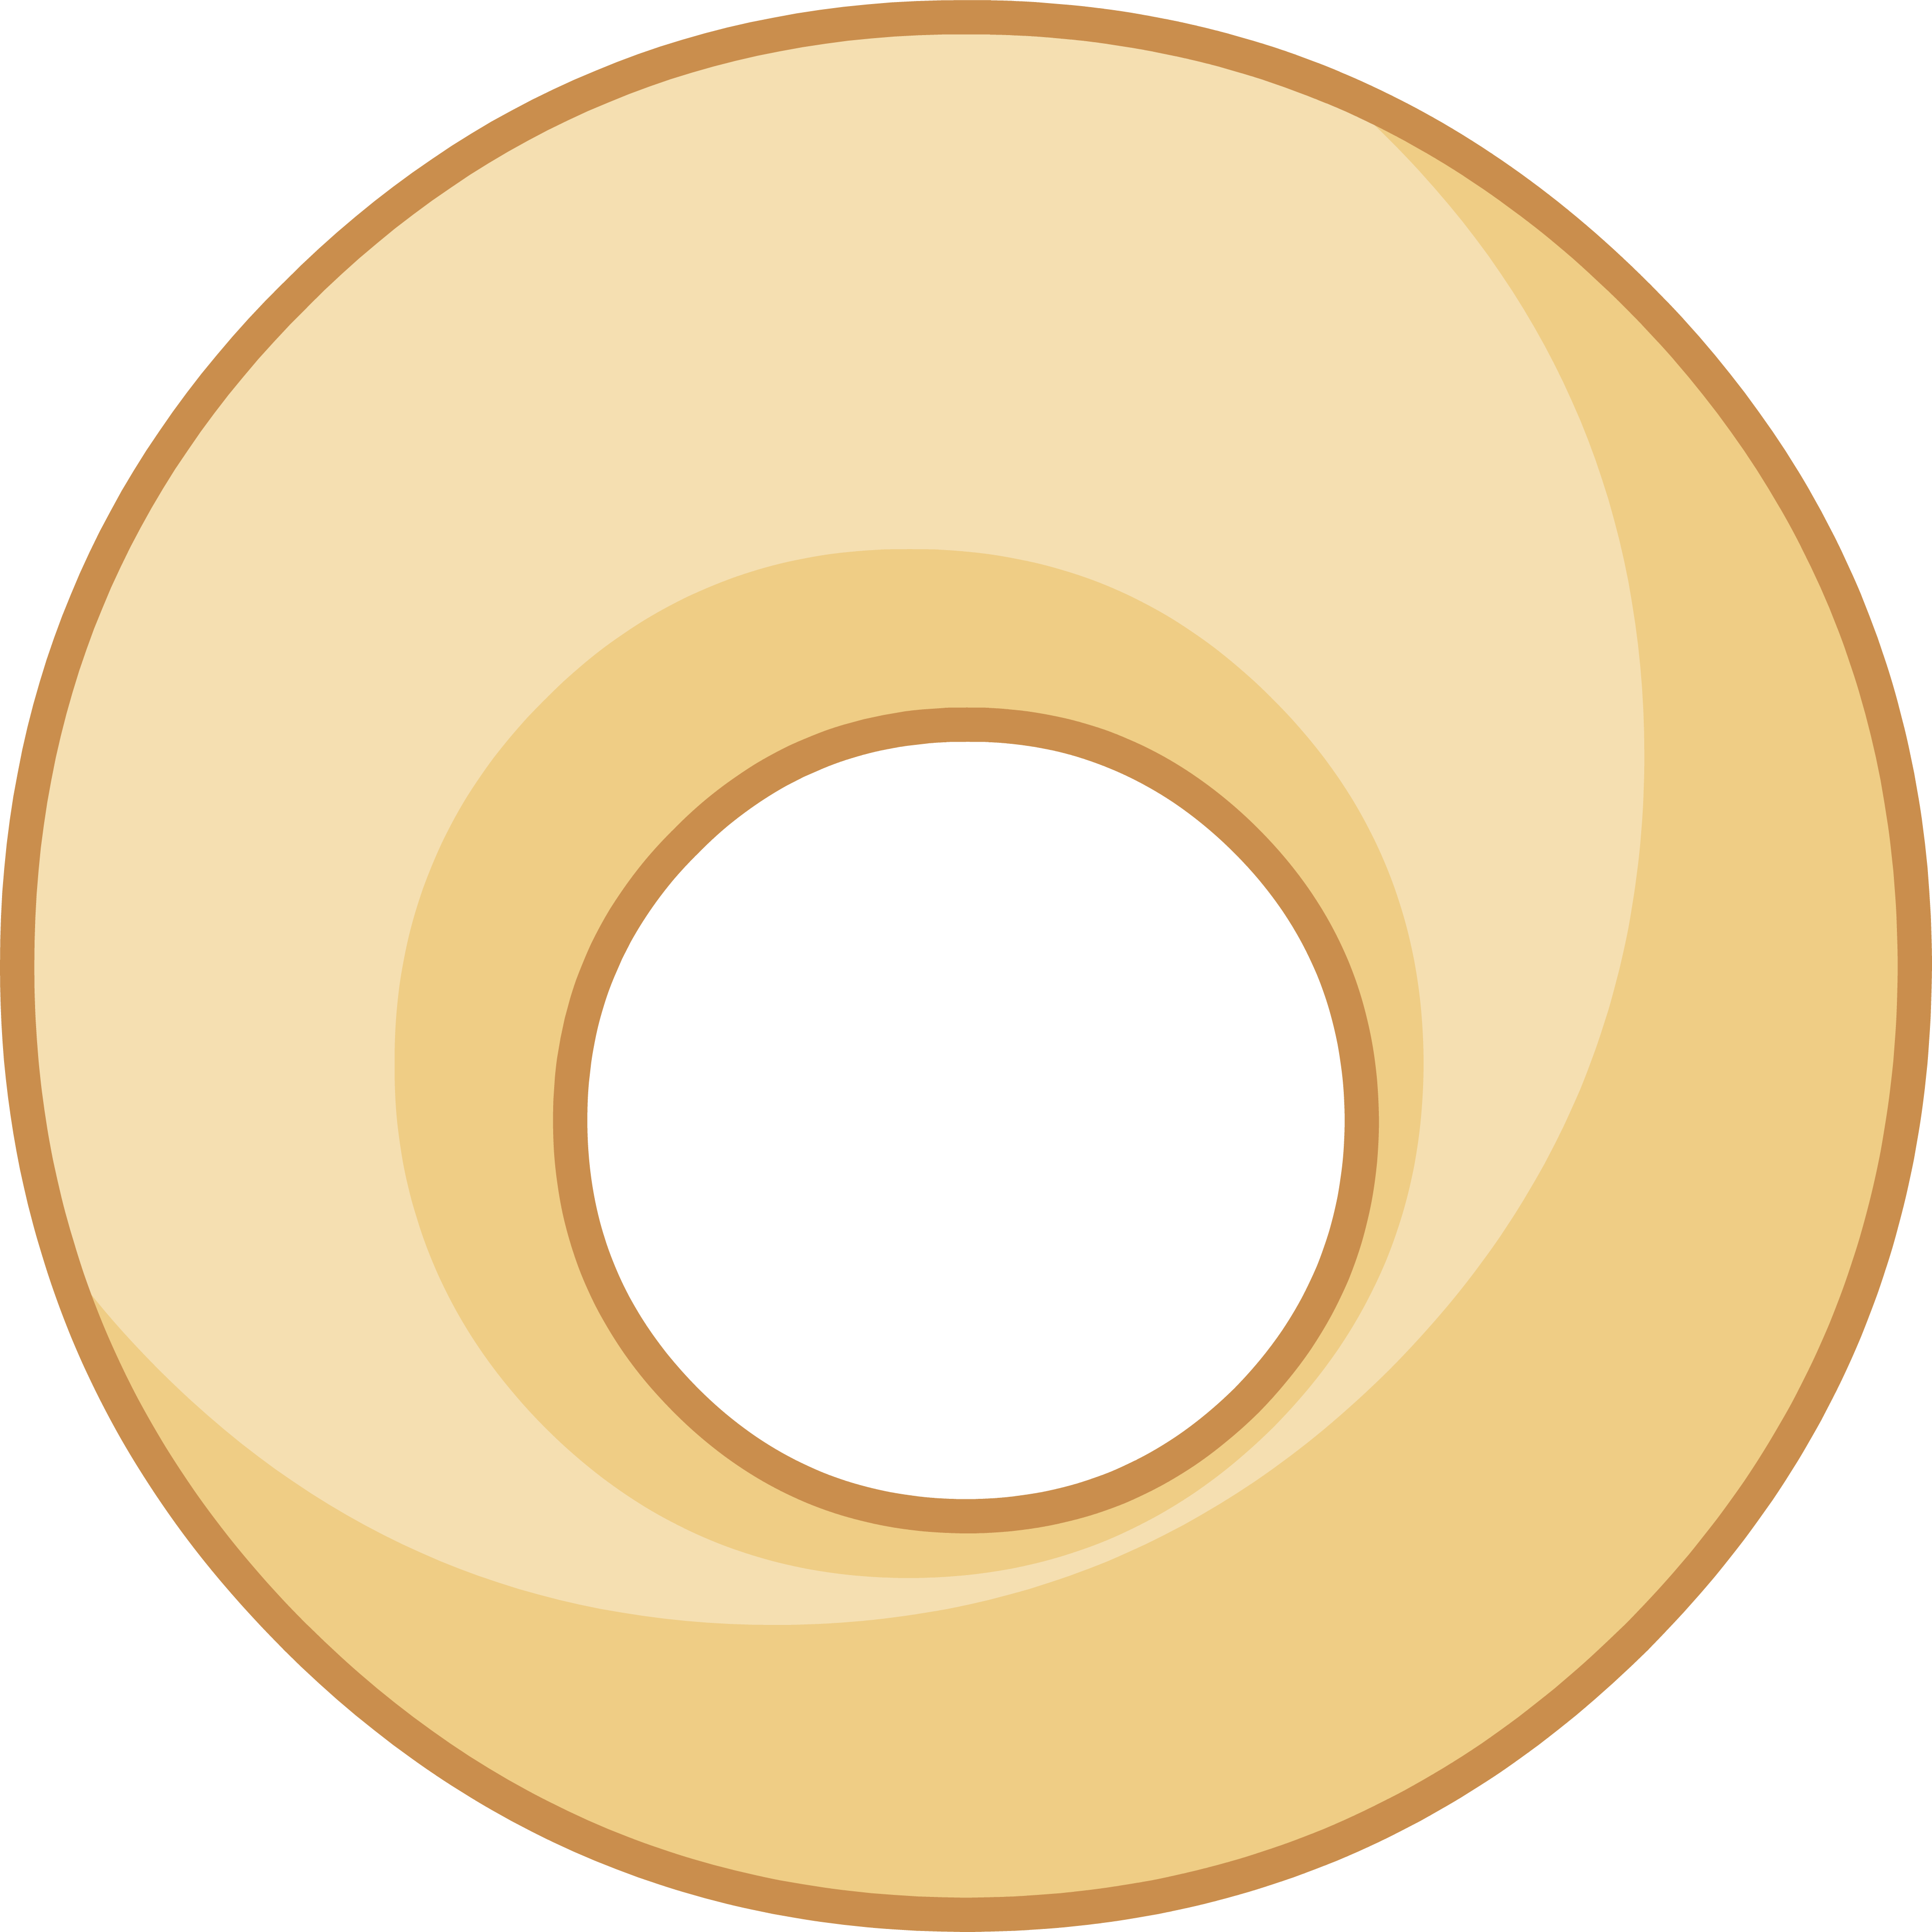 File:Donut C Open0003.png